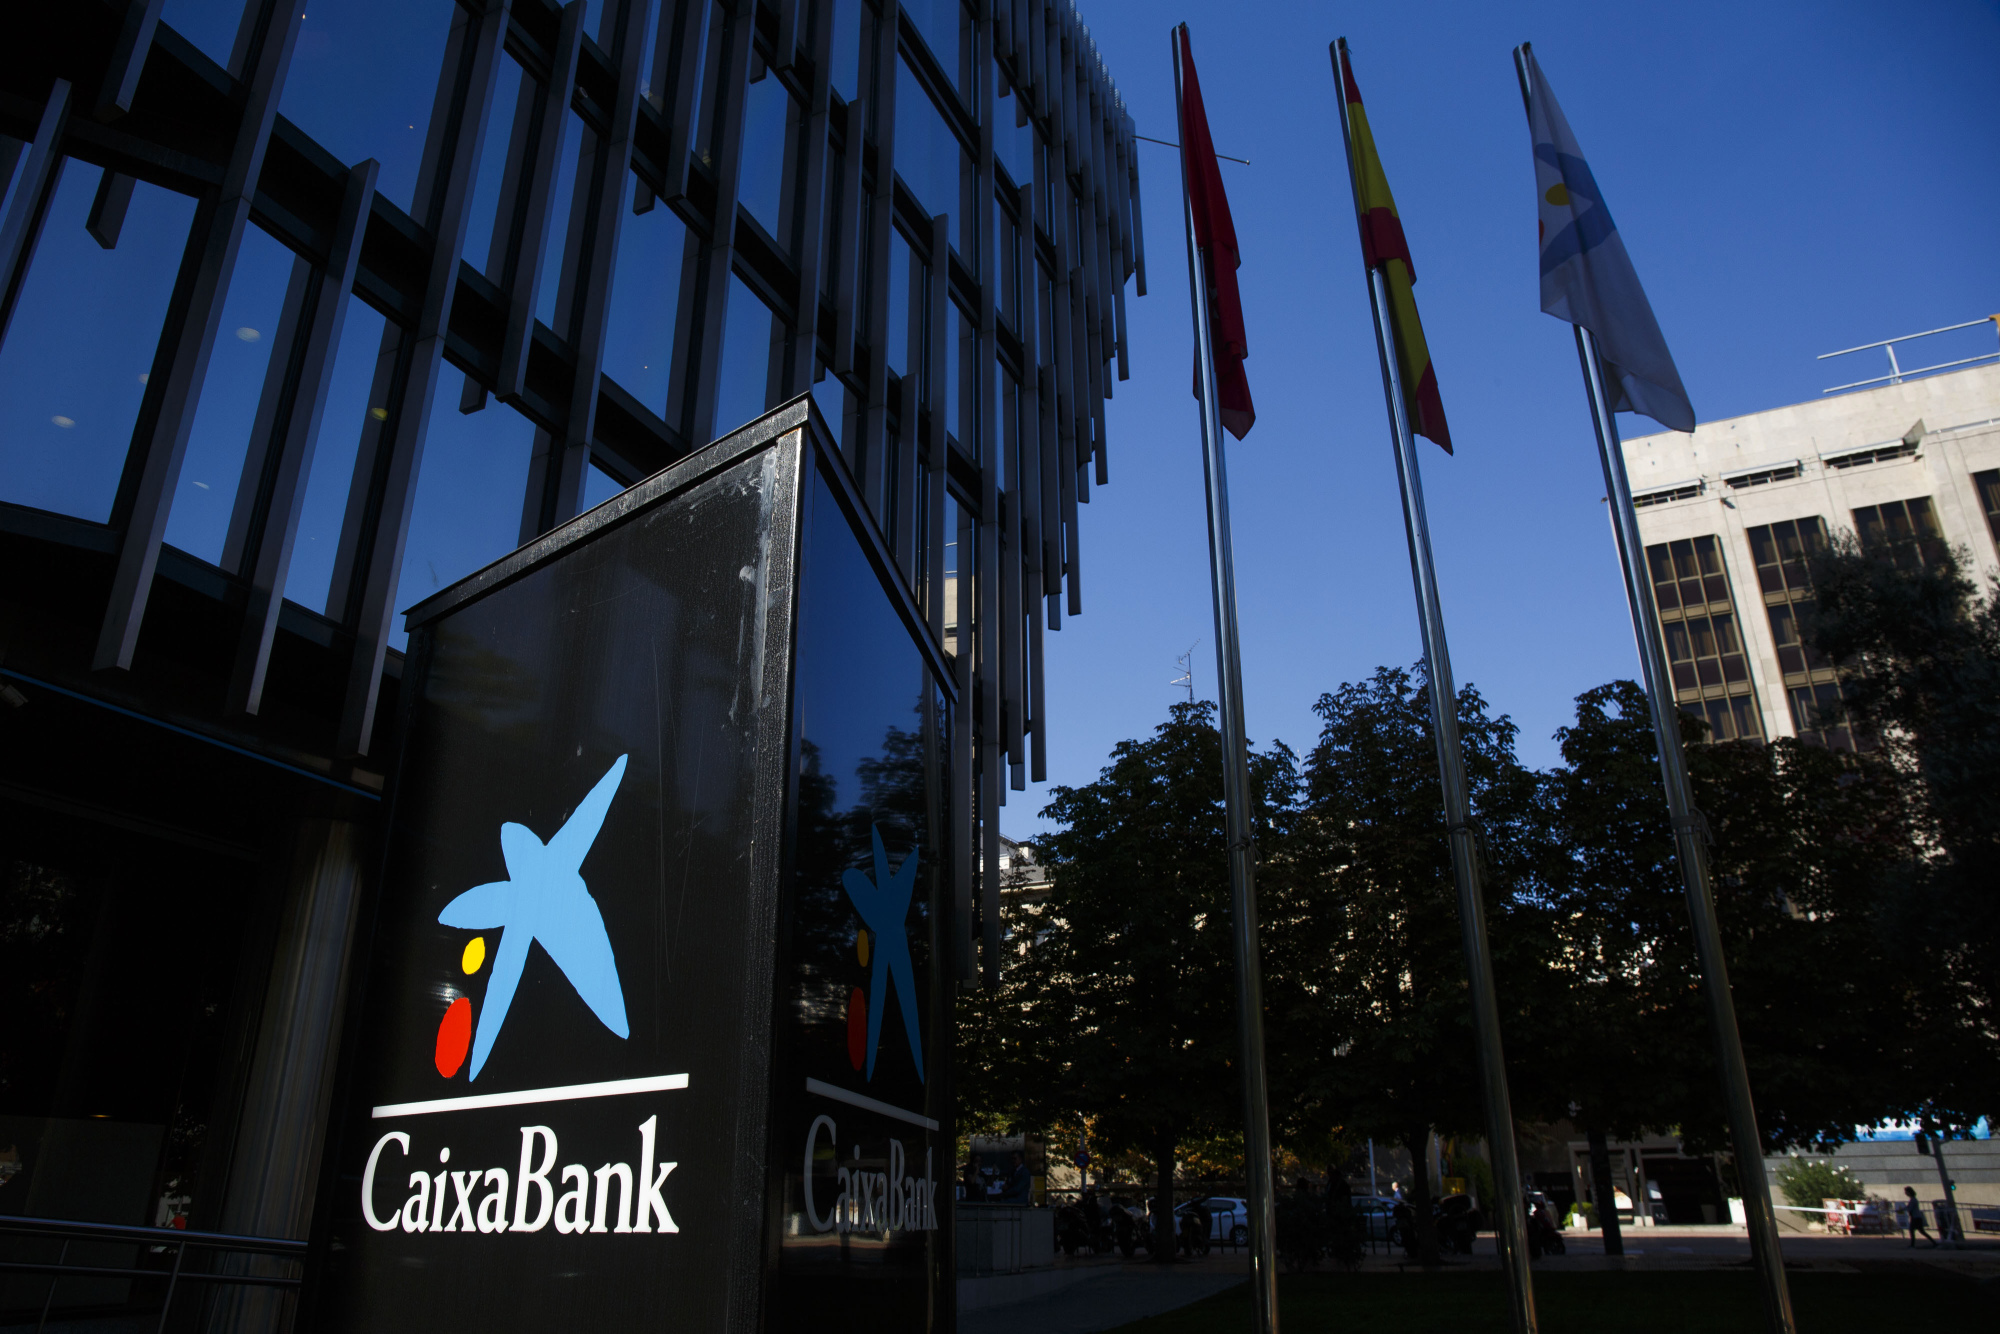 CaixaBank, Sabadell Show Low-Rate Challenges for Spain's